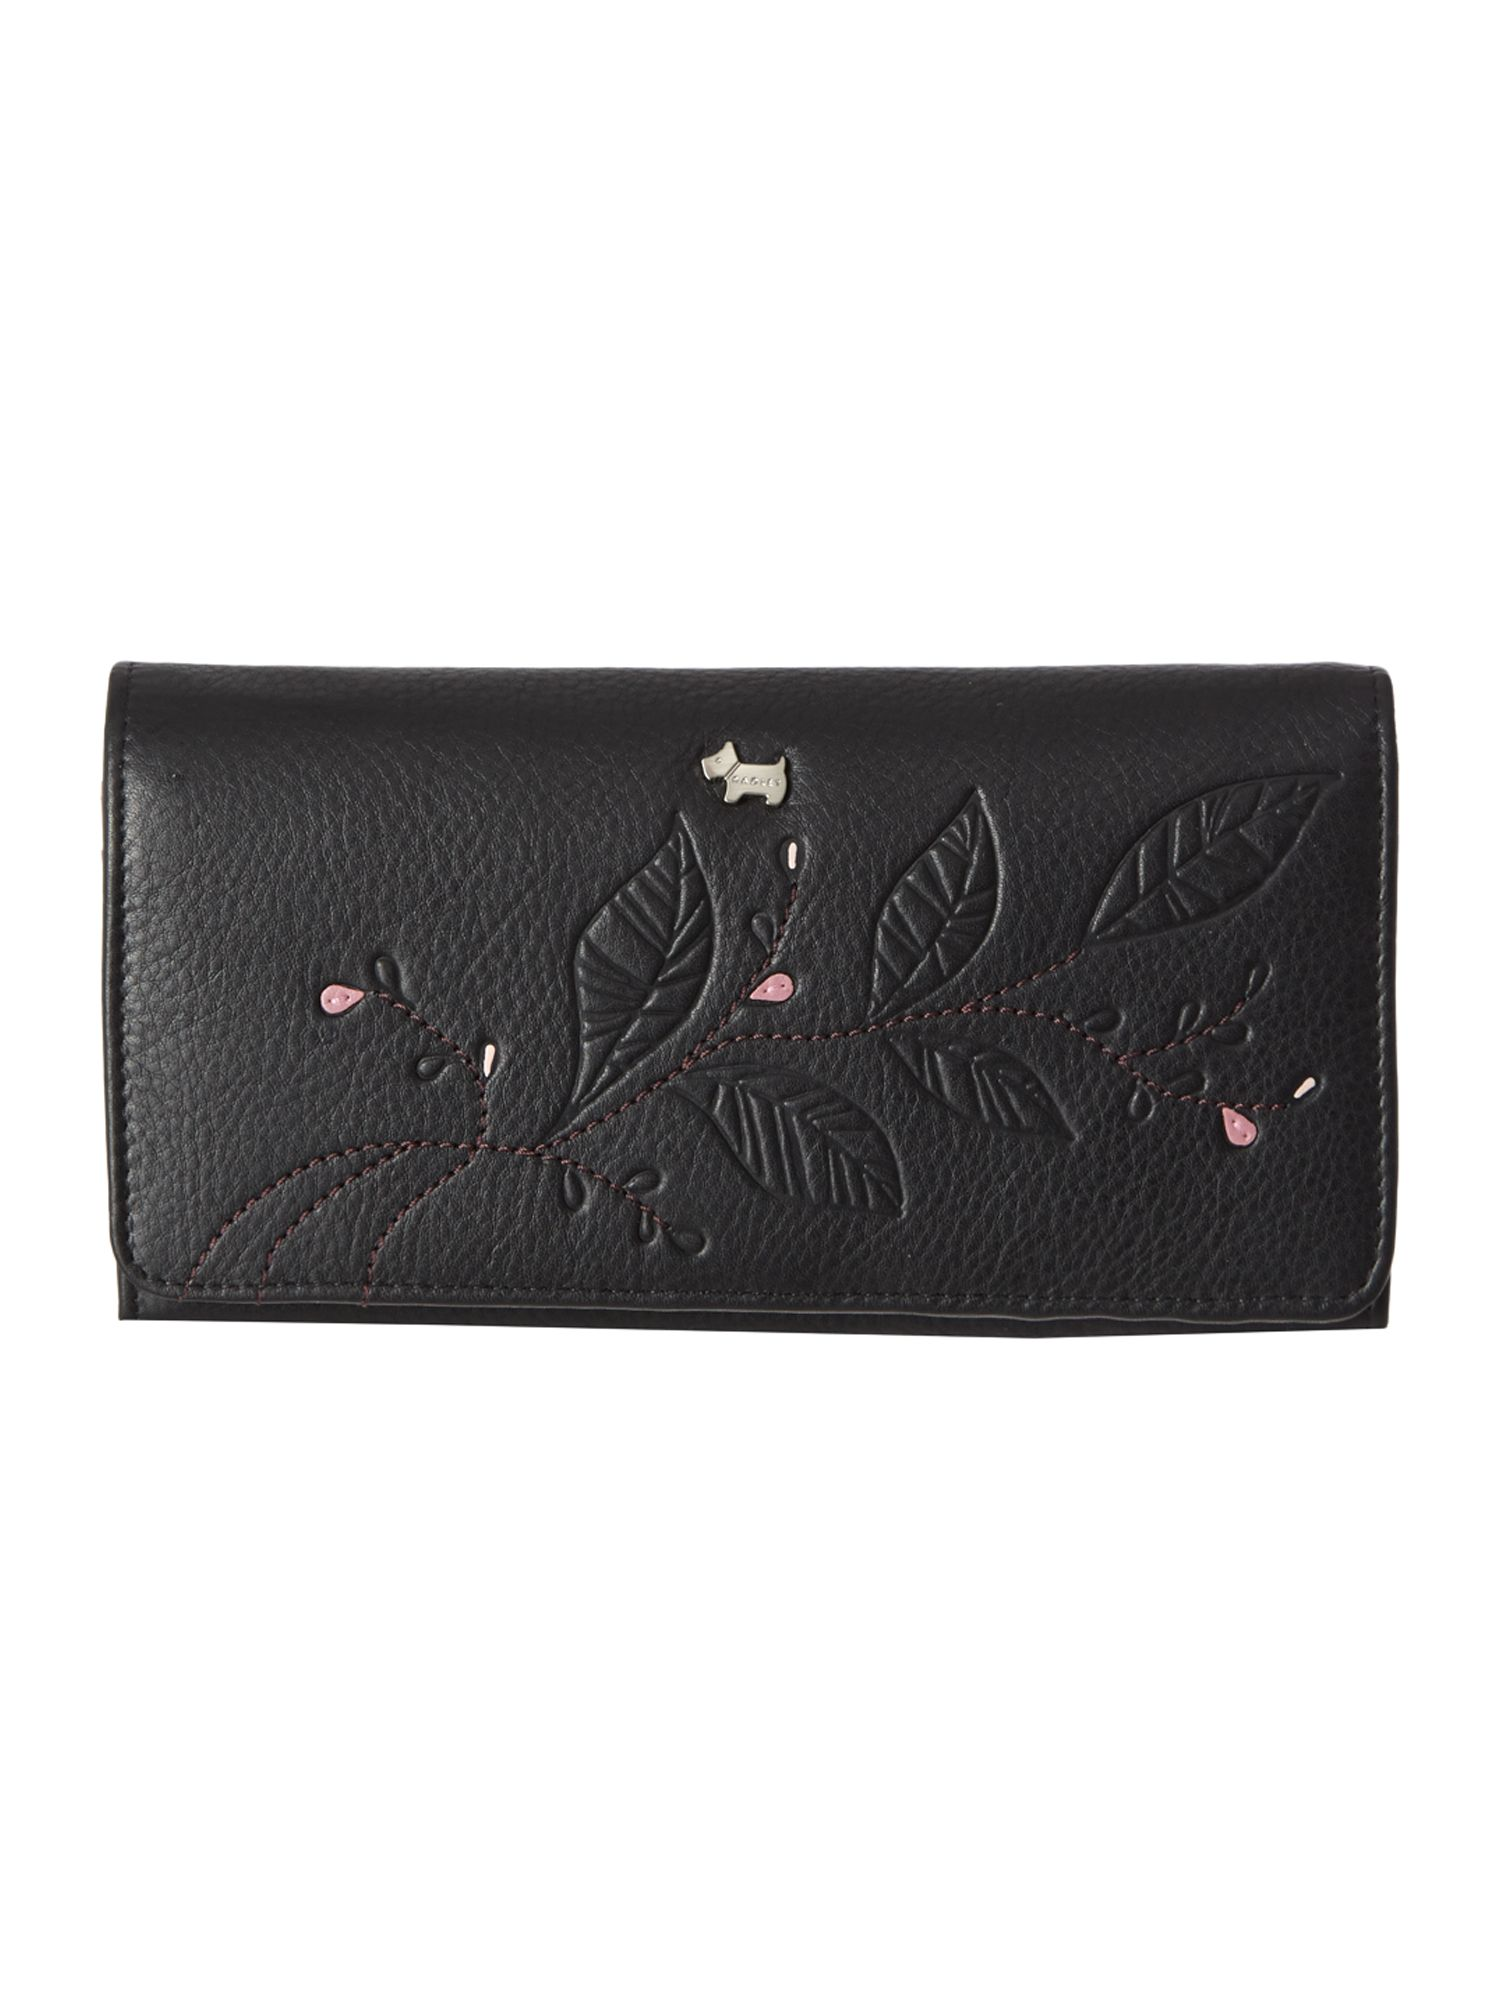 Laurel leaf black large flap over matinee purse